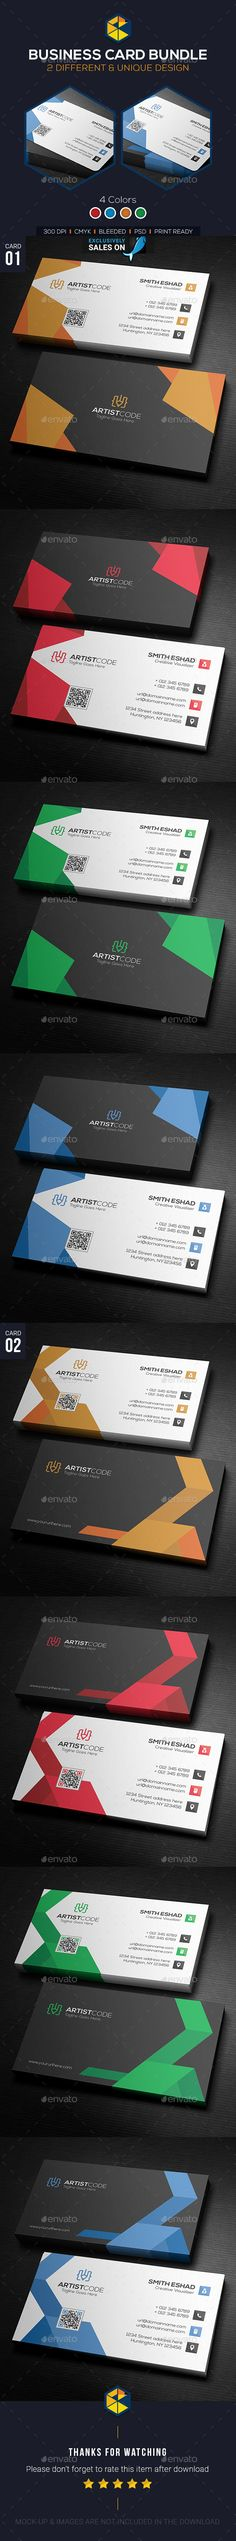 Corporate Business Card Template PSD Bundle. Download here: http://graphicriver.net/item/corporate-business-card-bundle/15730644?ref=ksioks